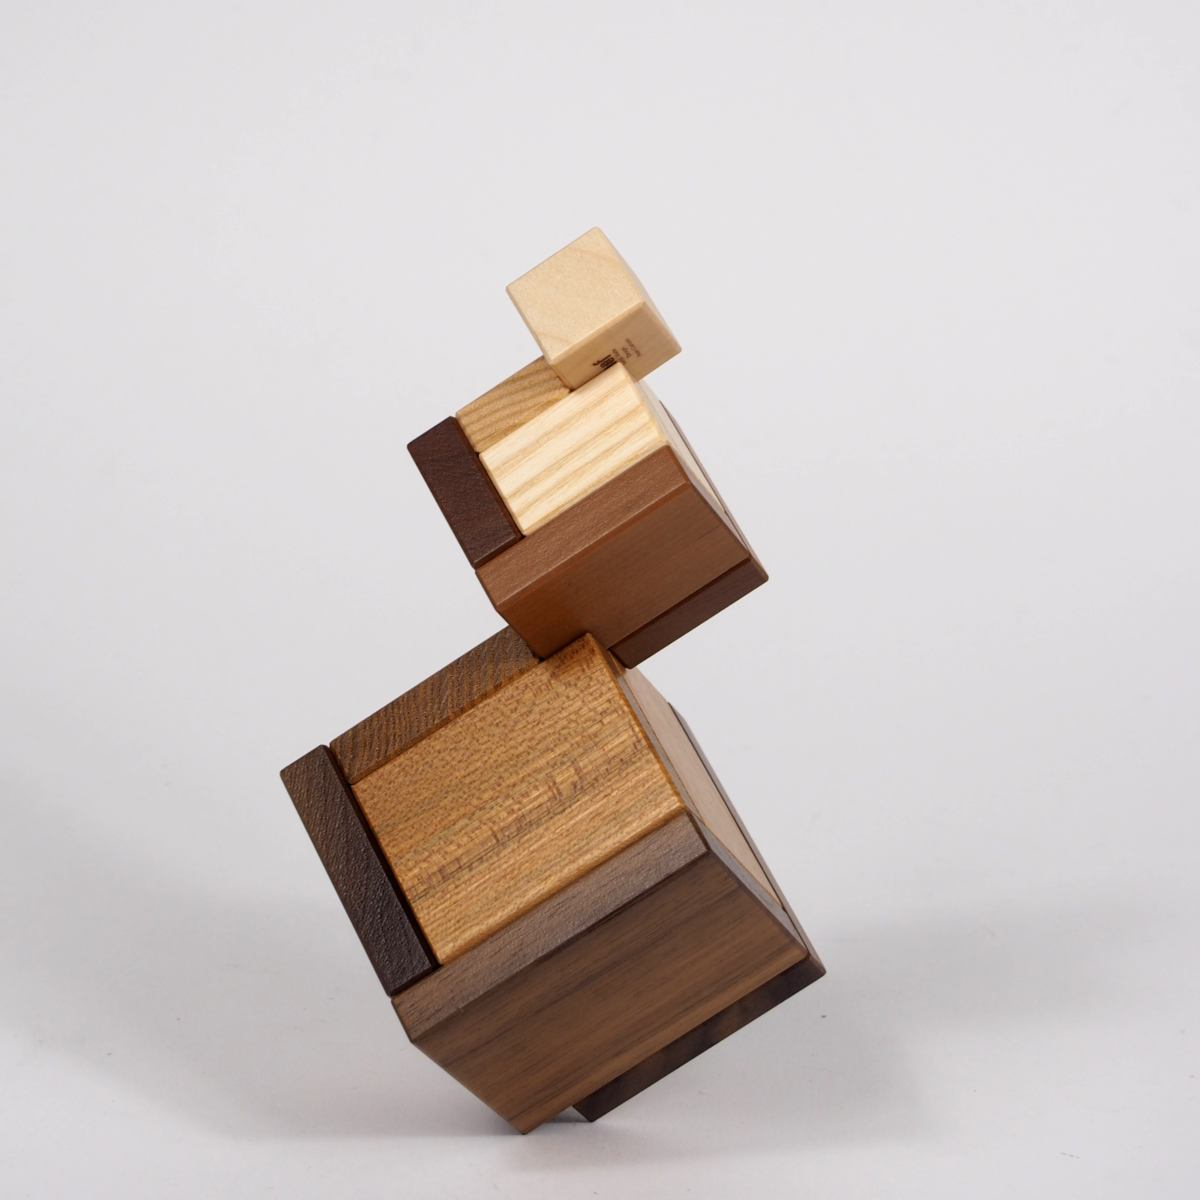 Construction Toy Cella made of precious woods | Kunstbaron